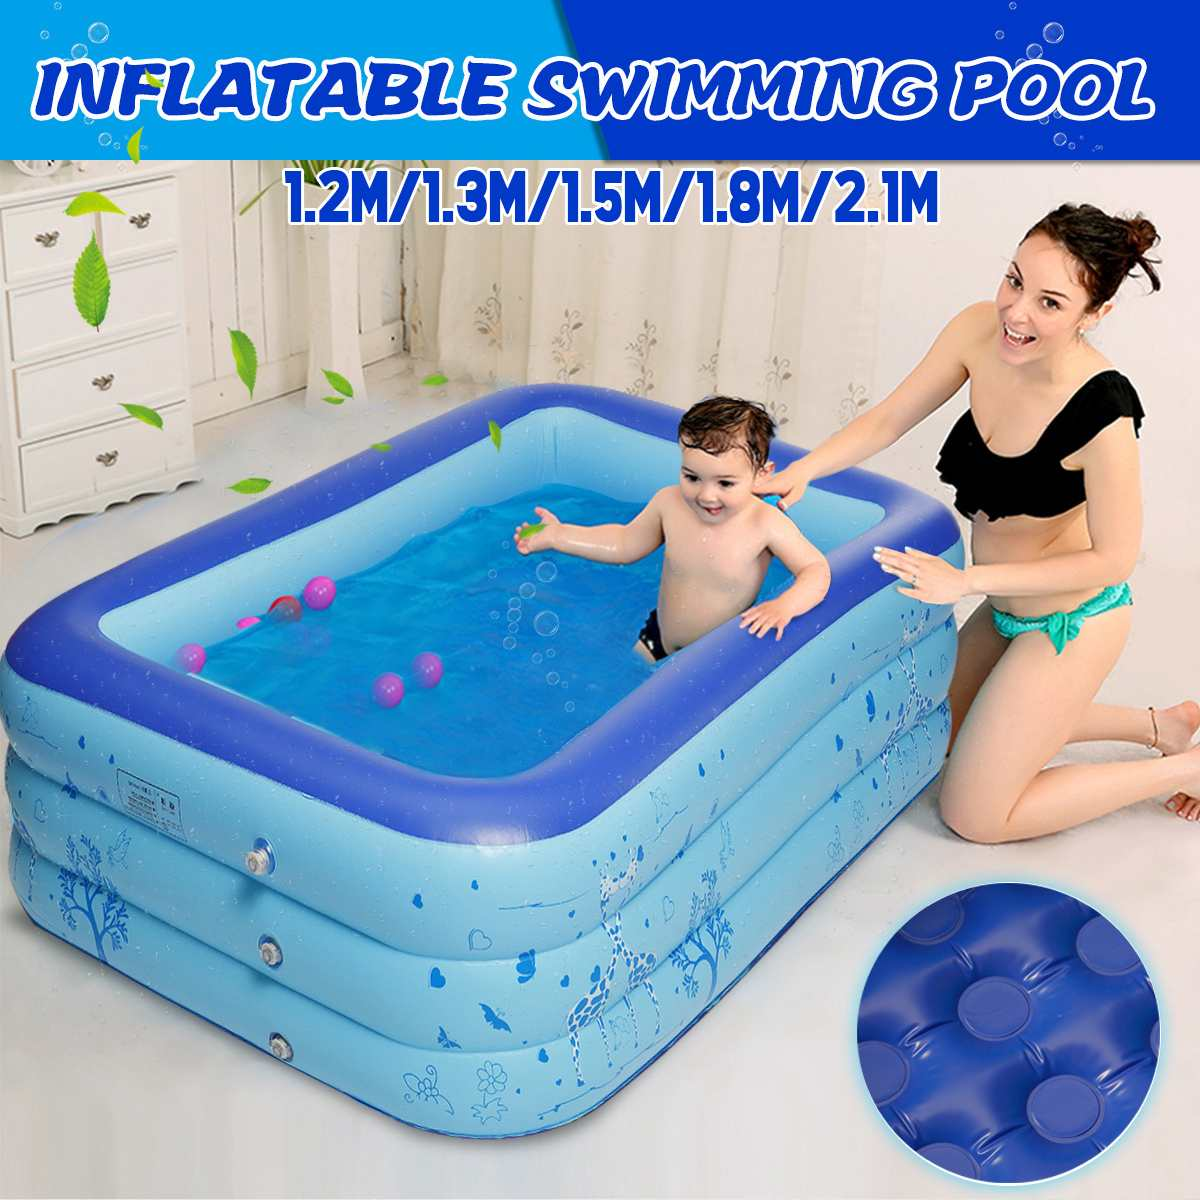 Inflatable Swimming Bath Pool Toys Outdoor Children Paddling Bathtub Summer Fun Blue PVC Rectangle 1.2M/1.3 M/1.5M/1.8M/2.1M